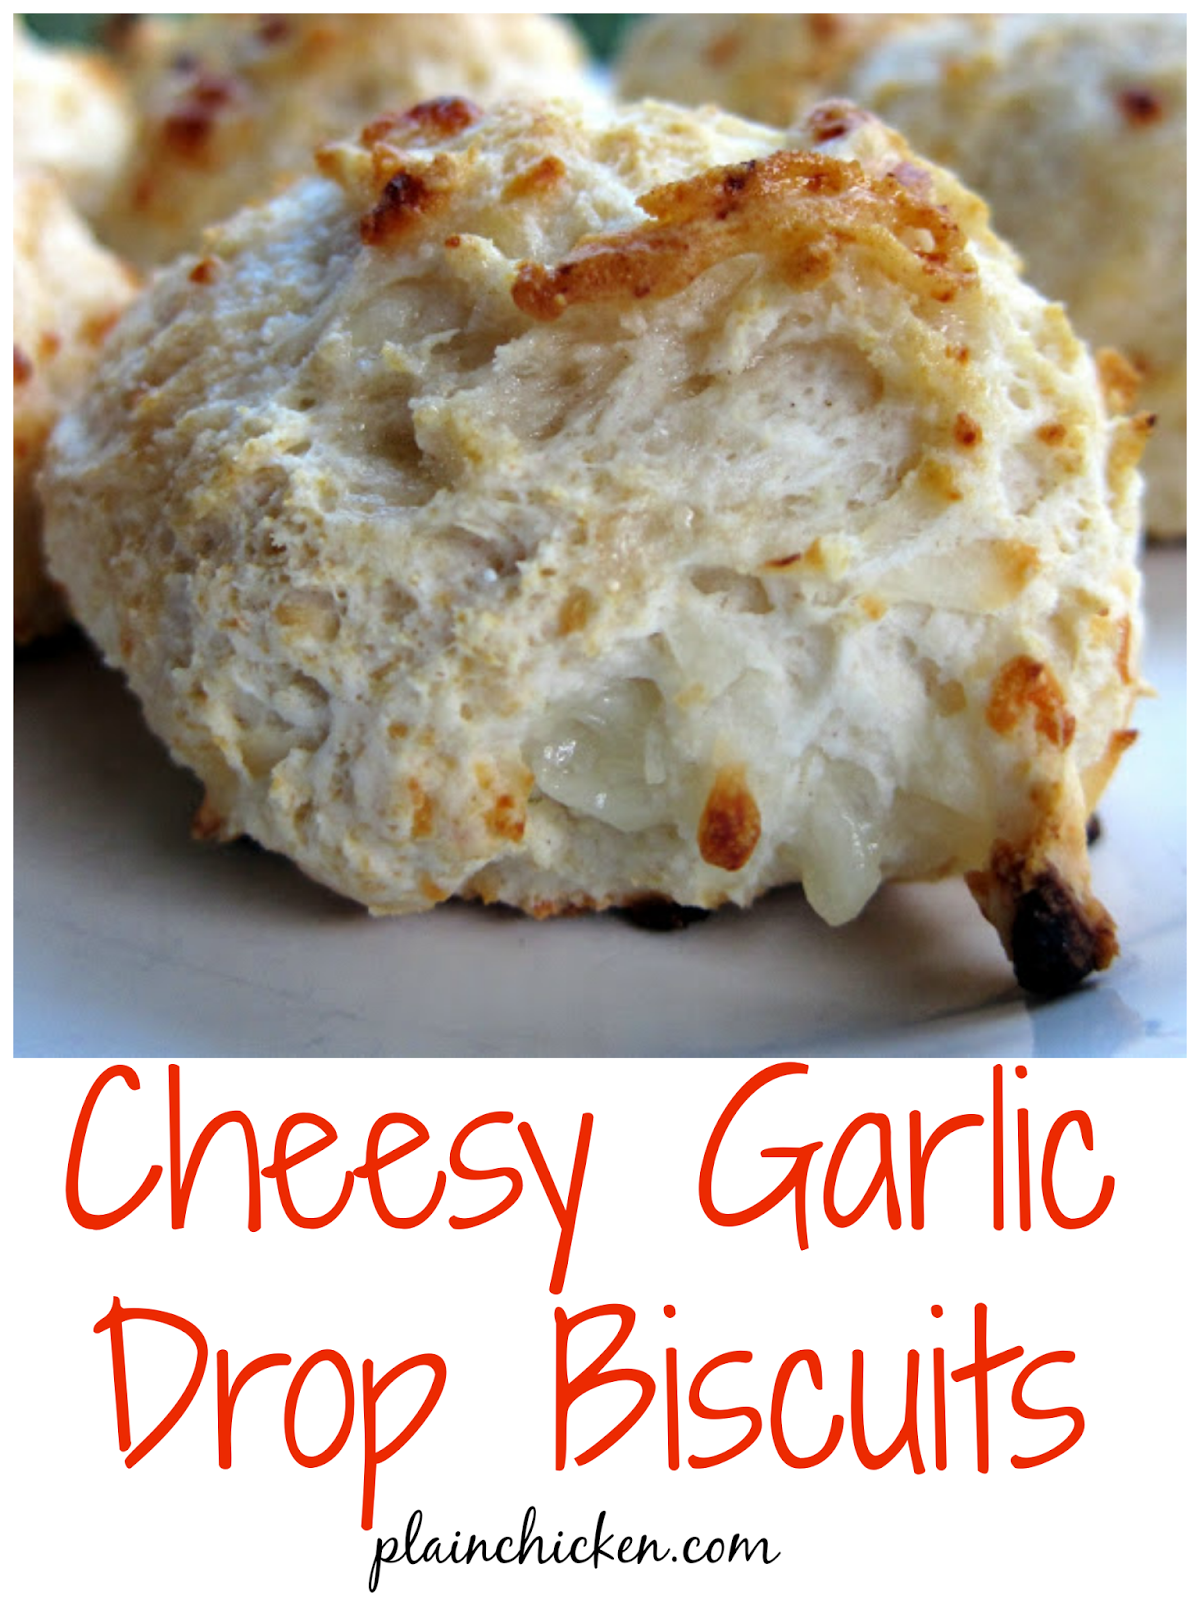 Cheesy Garlic Drop Biscuits - only 4 ingredients! Ready to eat in under 10 minutes!